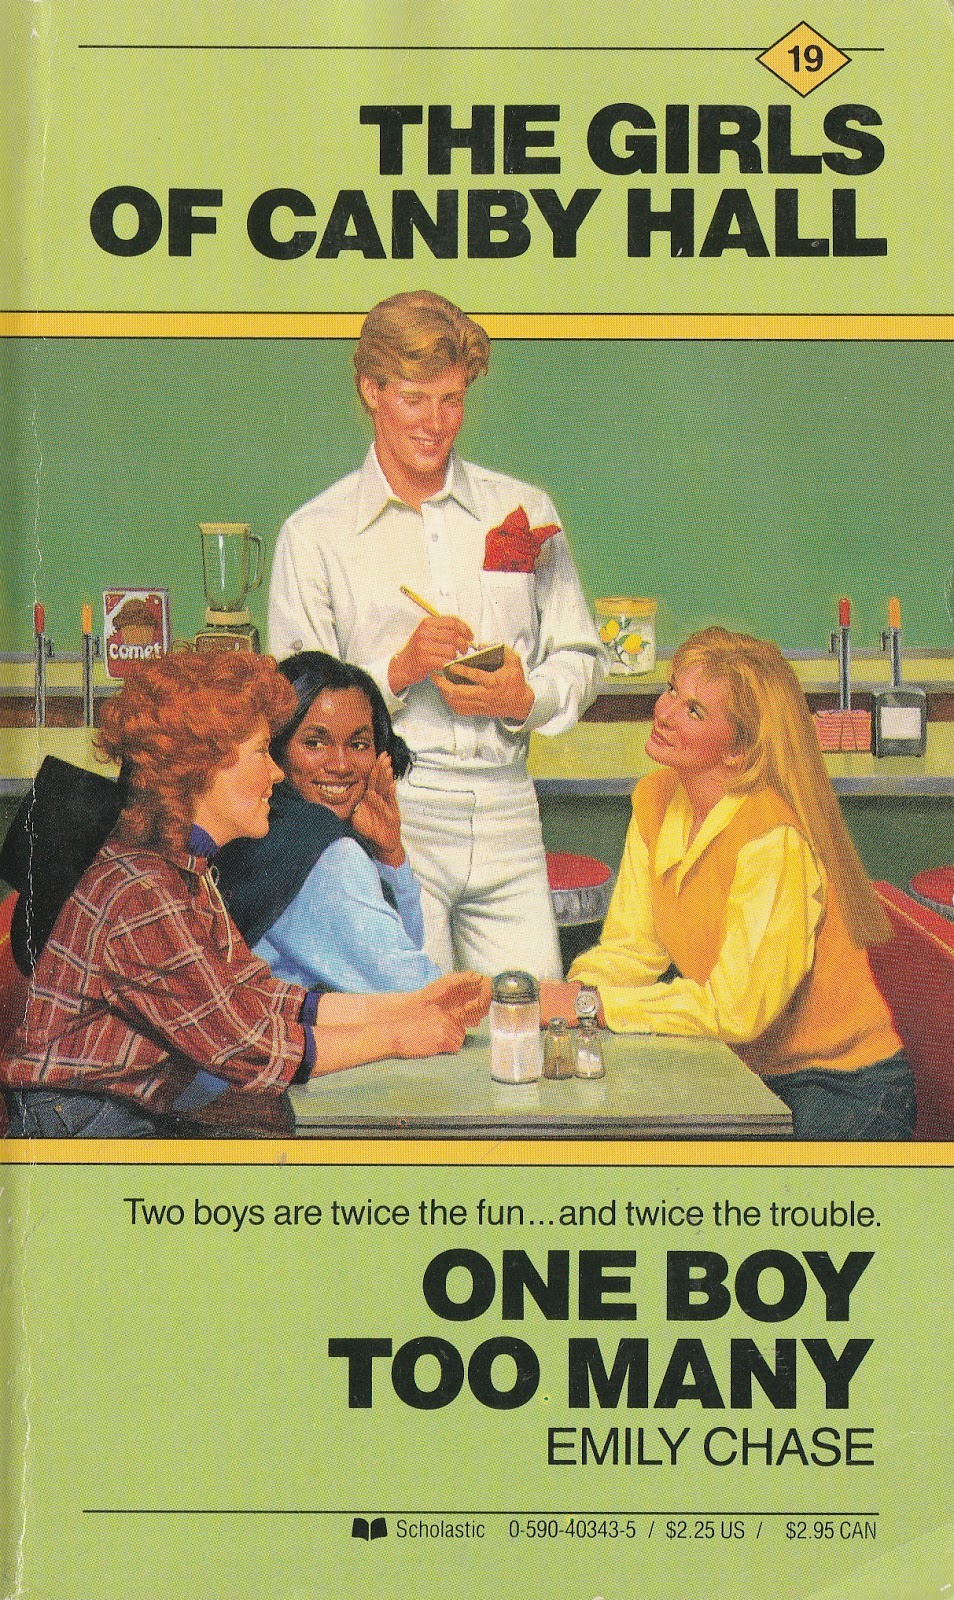 Series Books For Girls Girls Of Canby Hall 19 One Boy